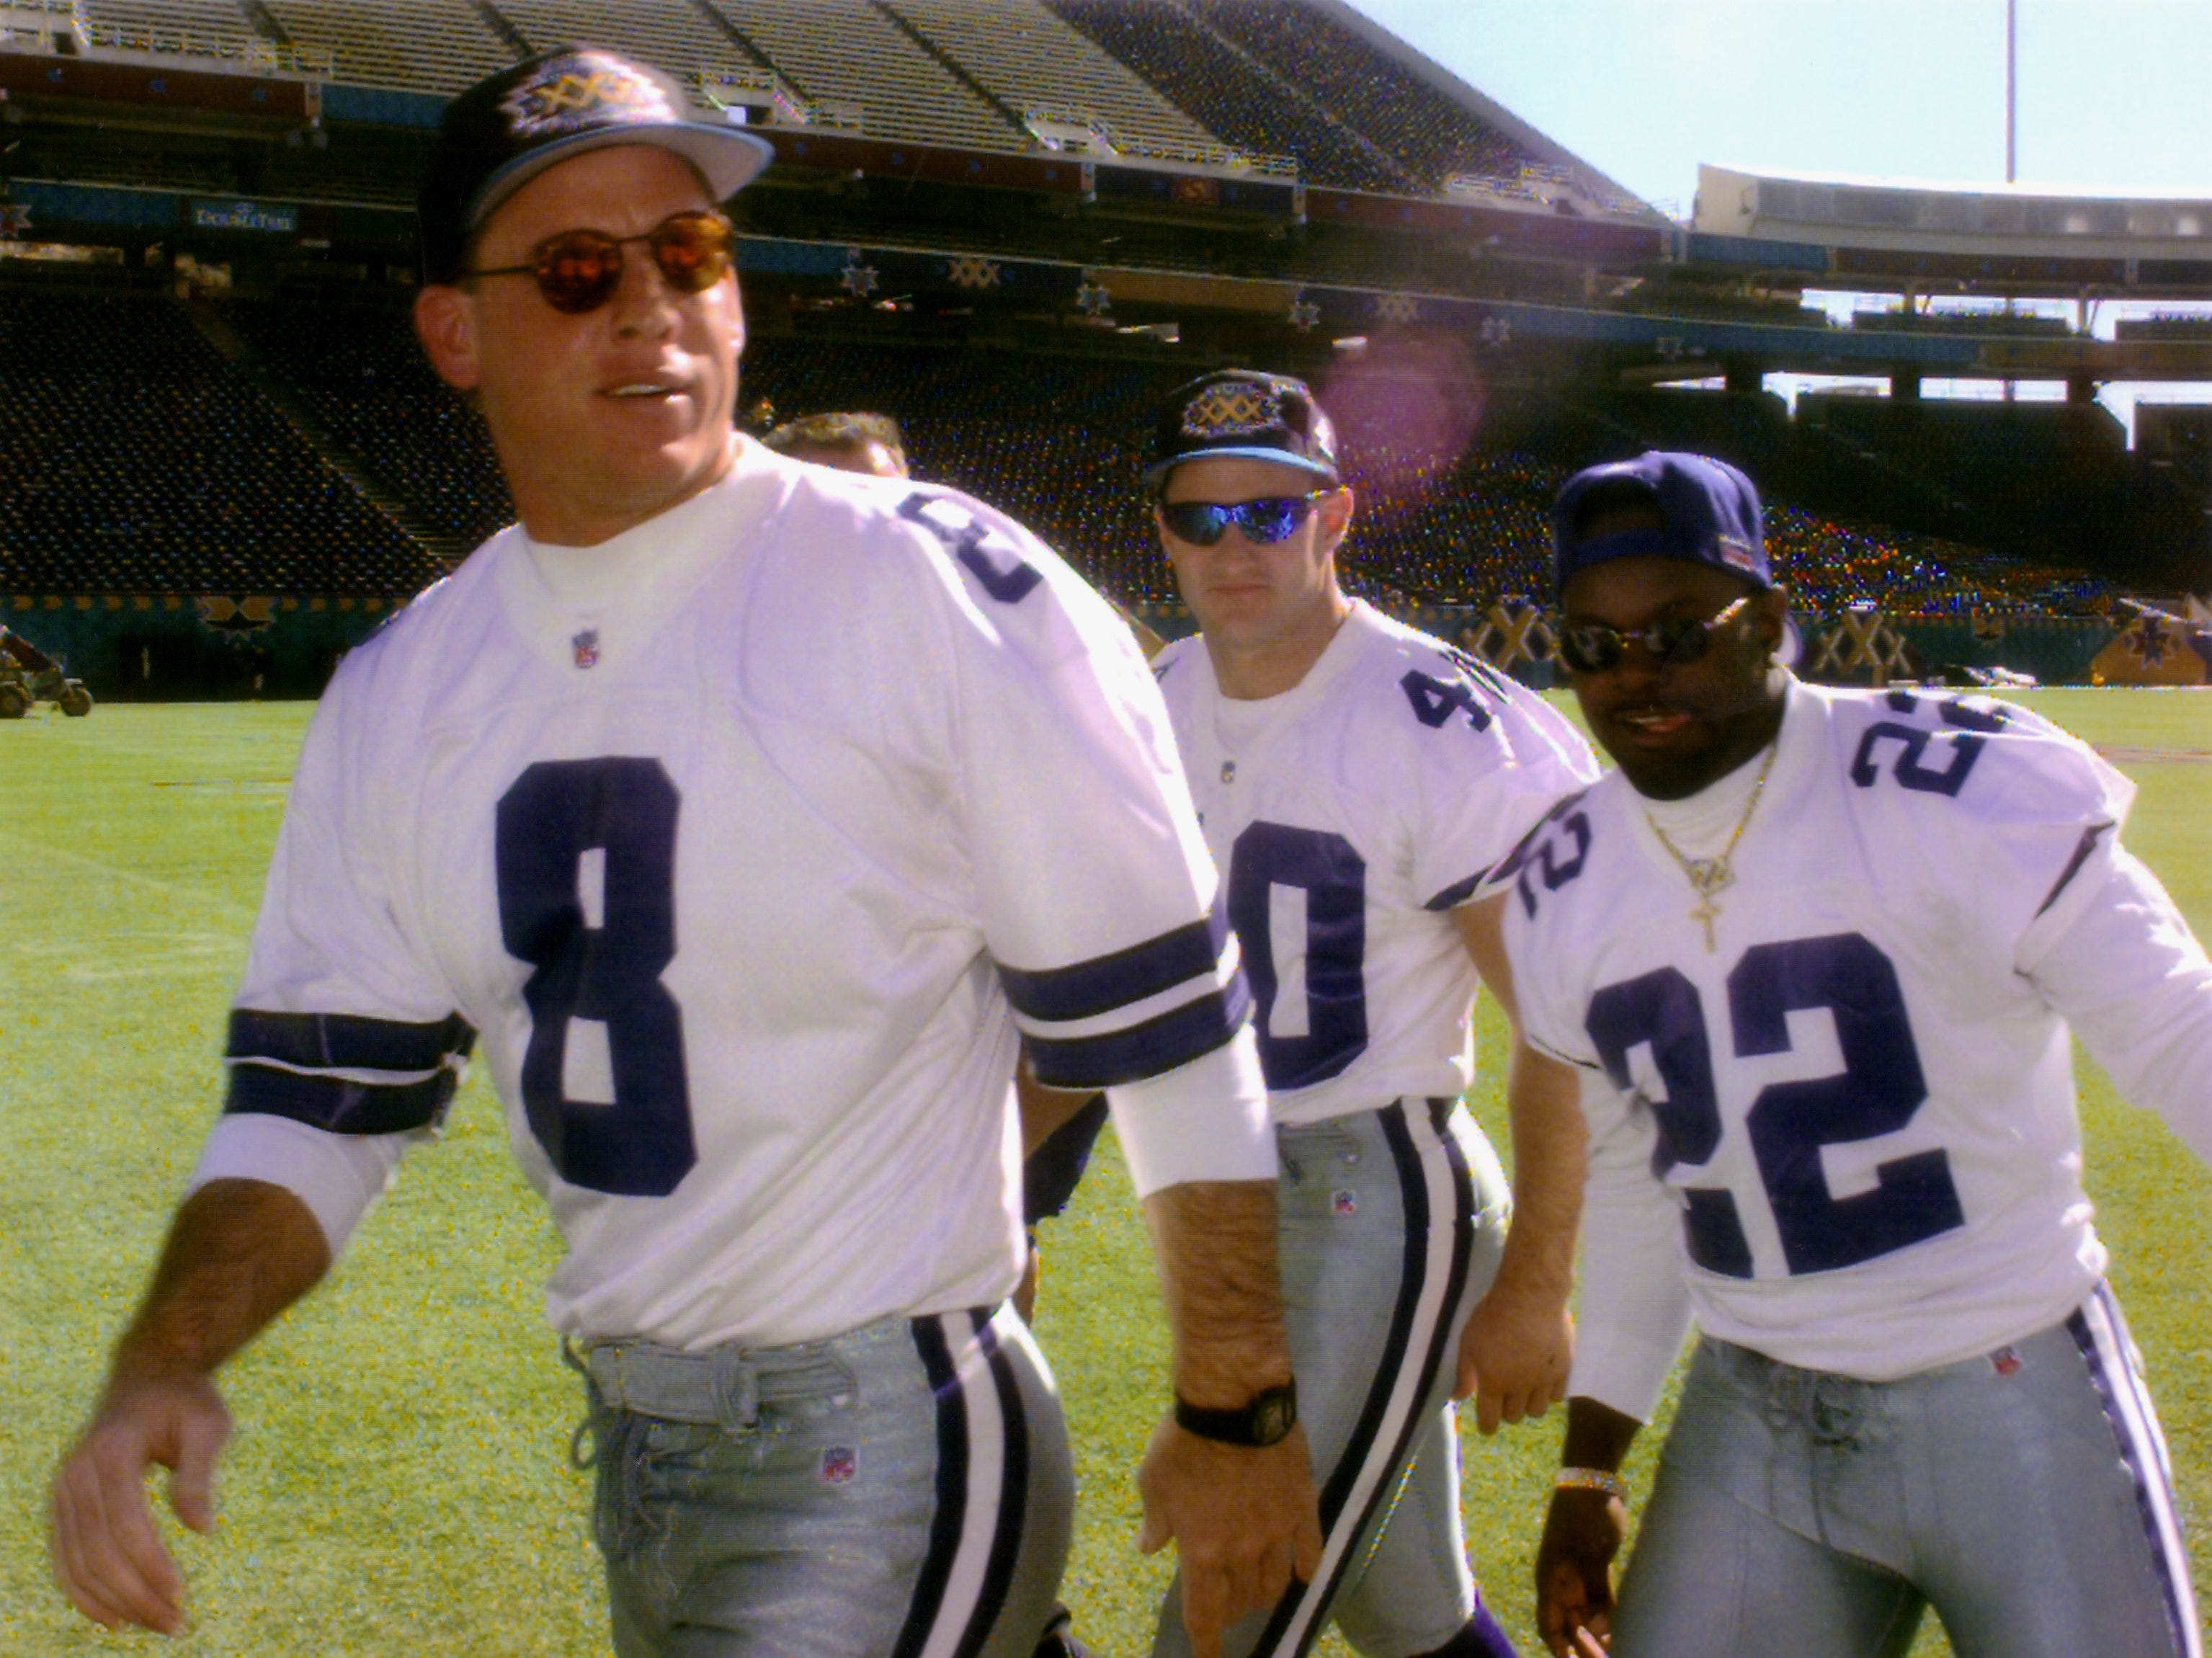 Dallas Cowboys quarterback Try Aikman, left, safety Bill Bates and running back Emmitt Smith, right, head for the team bus after Super Bowl XXX Media Day activities in Tempe, Arizona, Jan. 23, 1996.